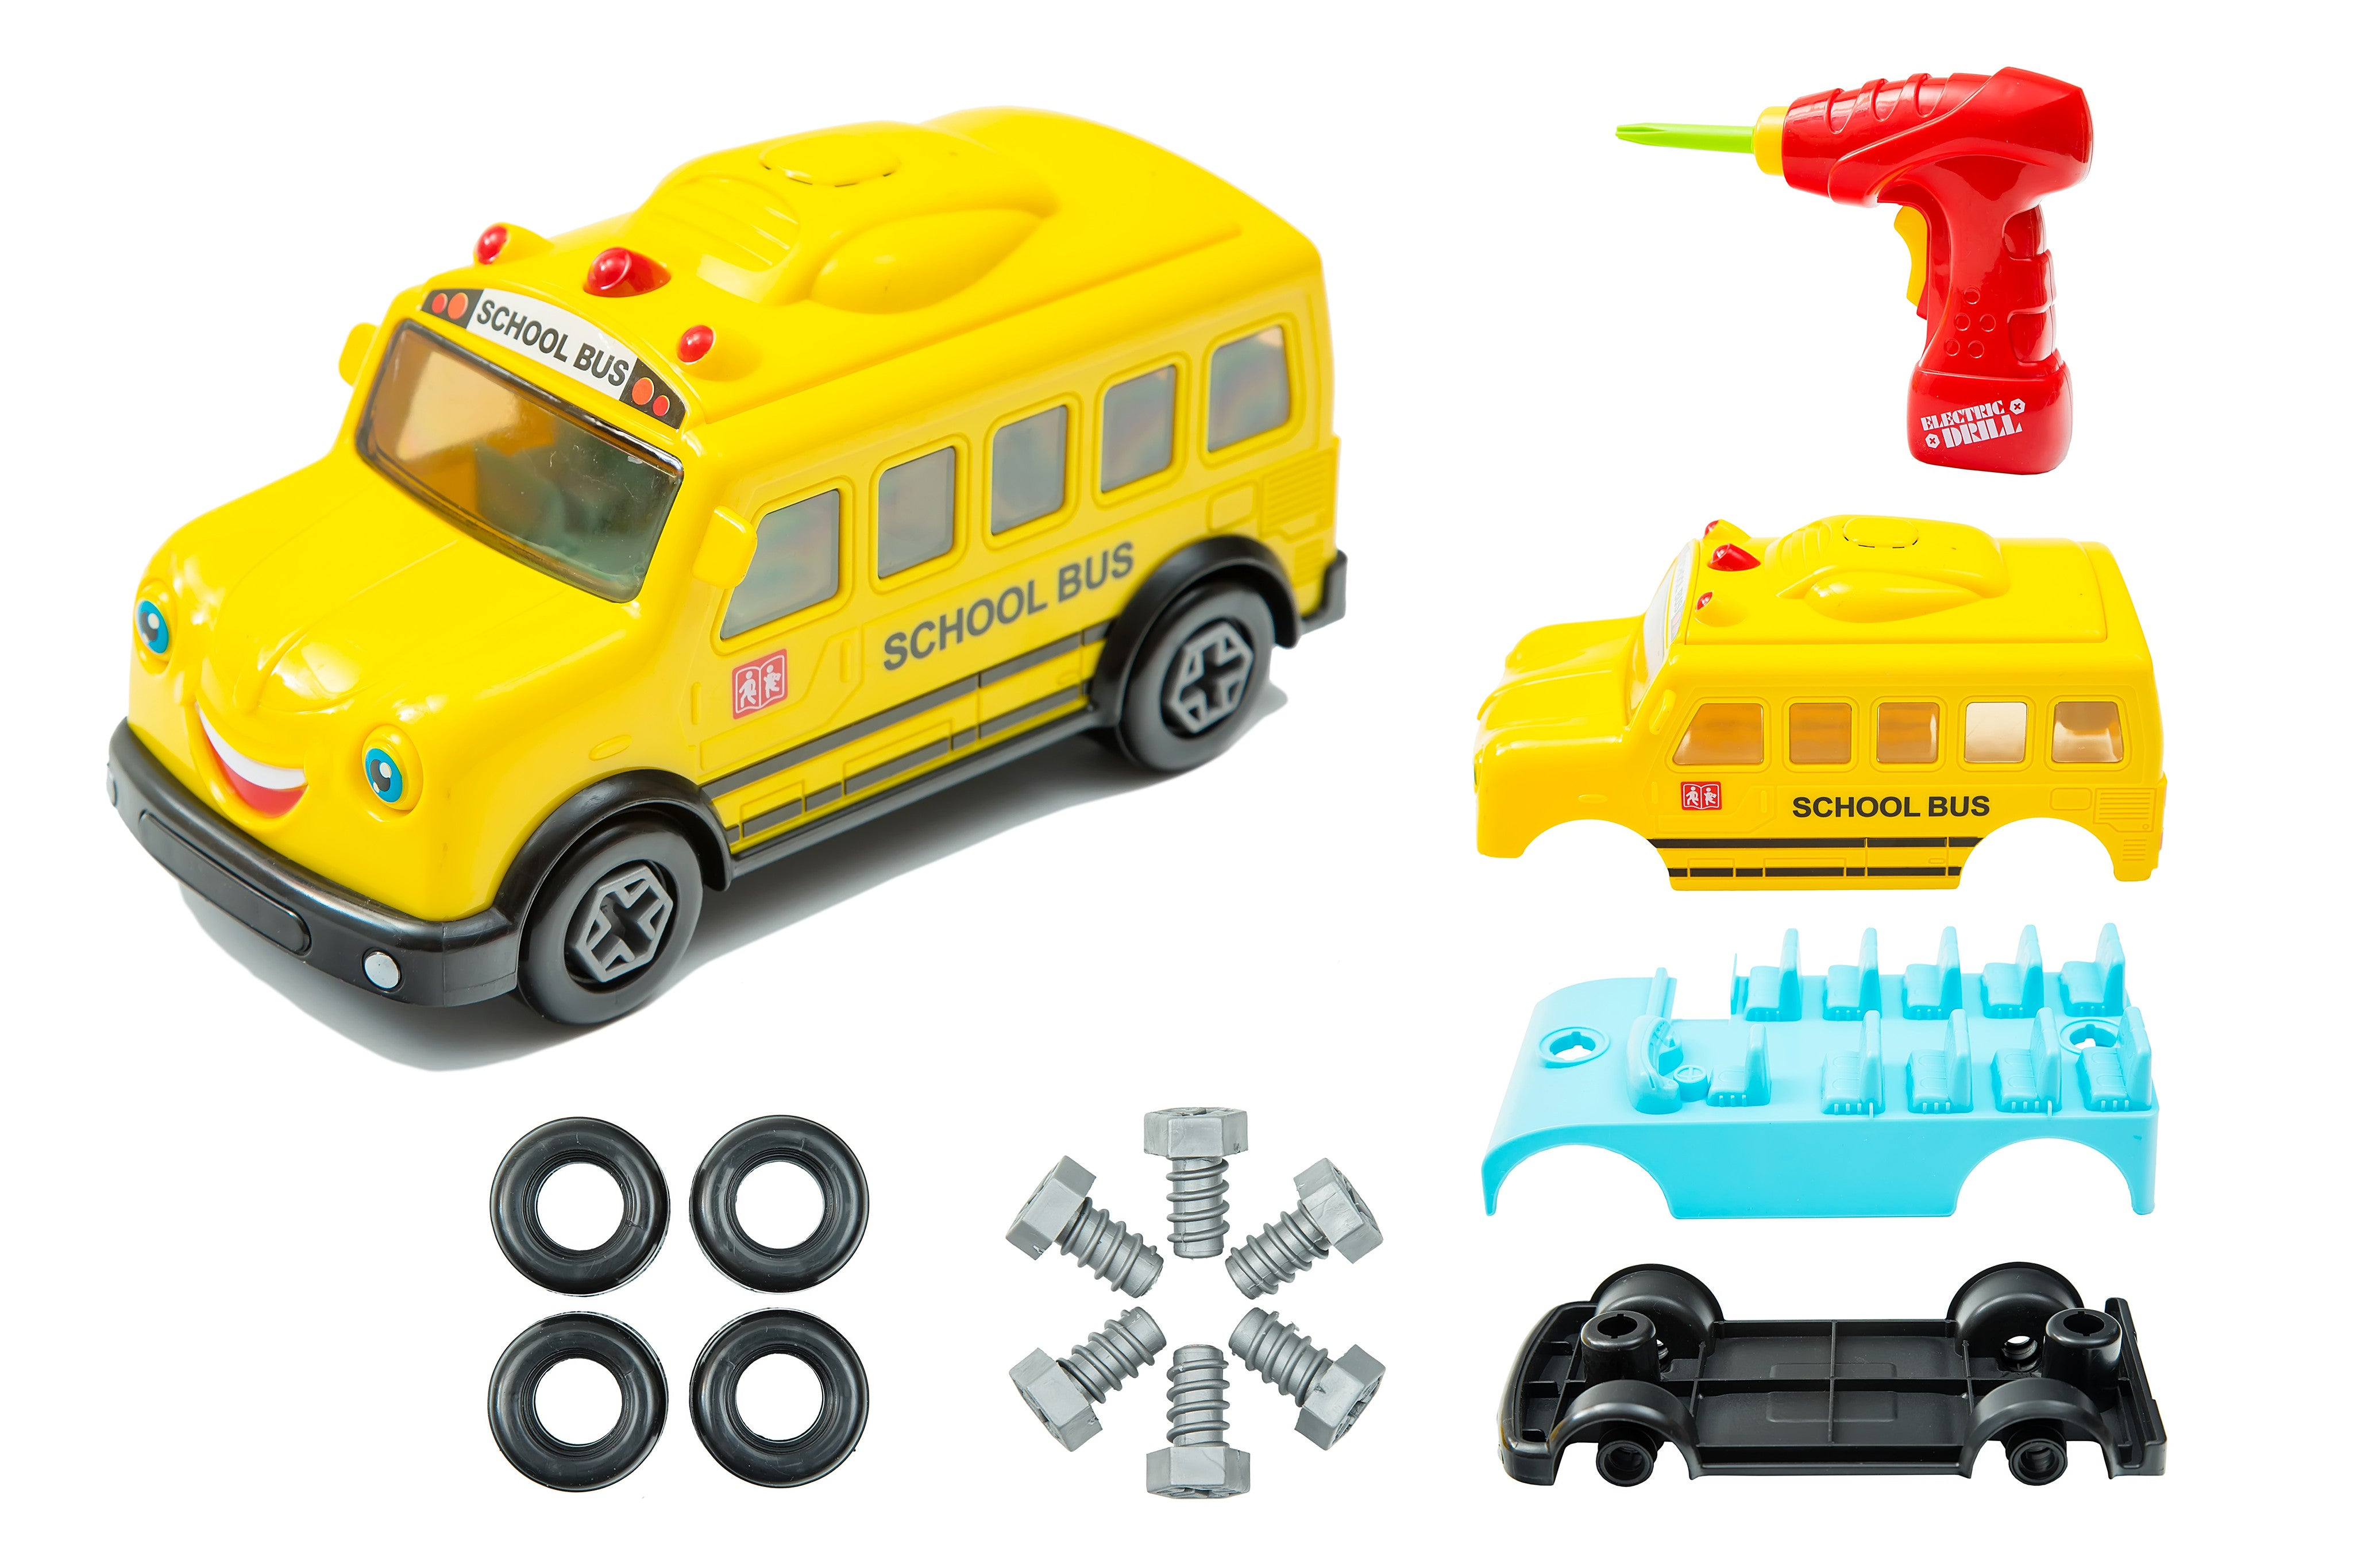 school bus take a part toy for kids with 15 take apart pieces build your own bus construction set